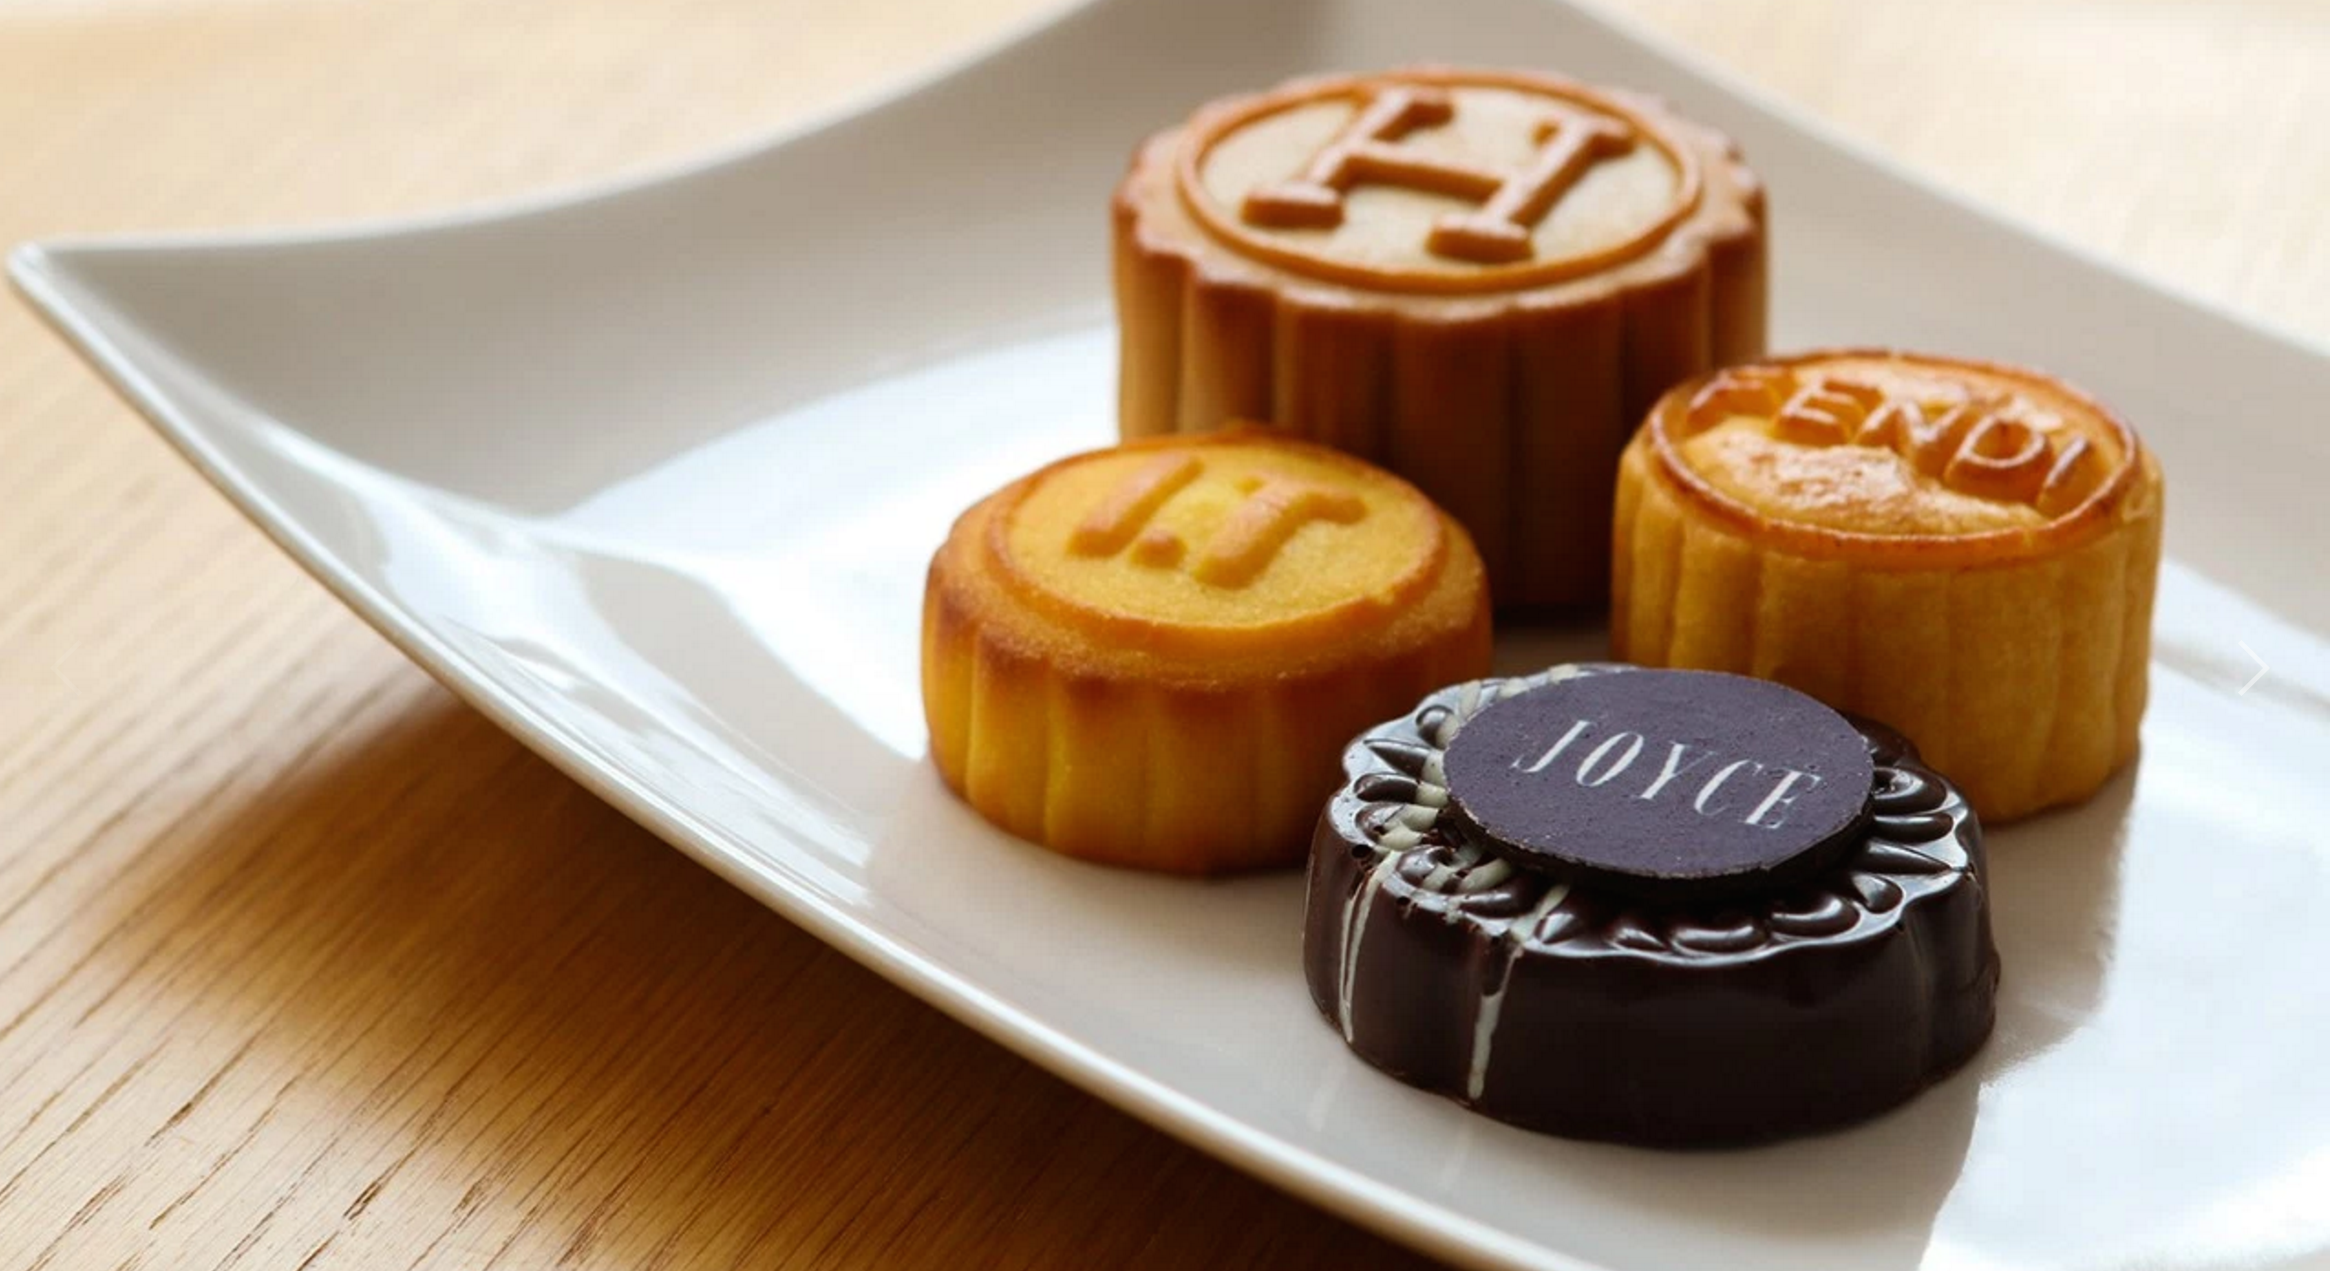 Here are some luxury brands from Hong Kong making splashes in the Mooncake foray. Hermes, Fendi, I.T. and Joyce (Hong Kong's version of a high end Barney's)